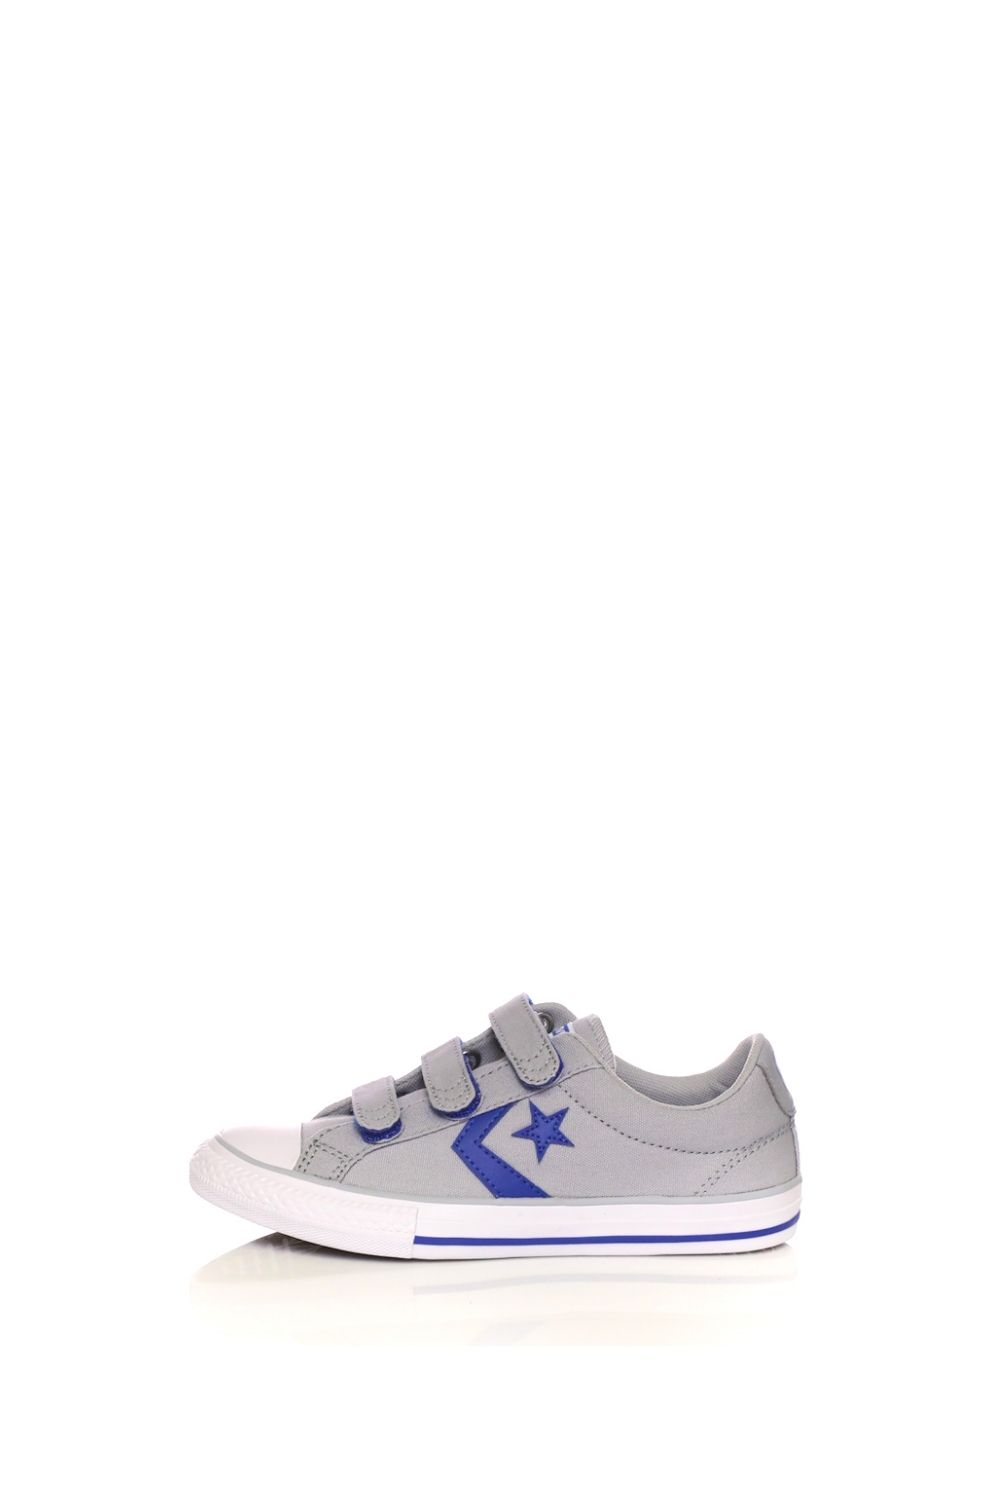 -40% Collective Online CONVERSE – Παιδικά sneakers Converse Star Player EV  V Ox γκρι bac928e4ad5